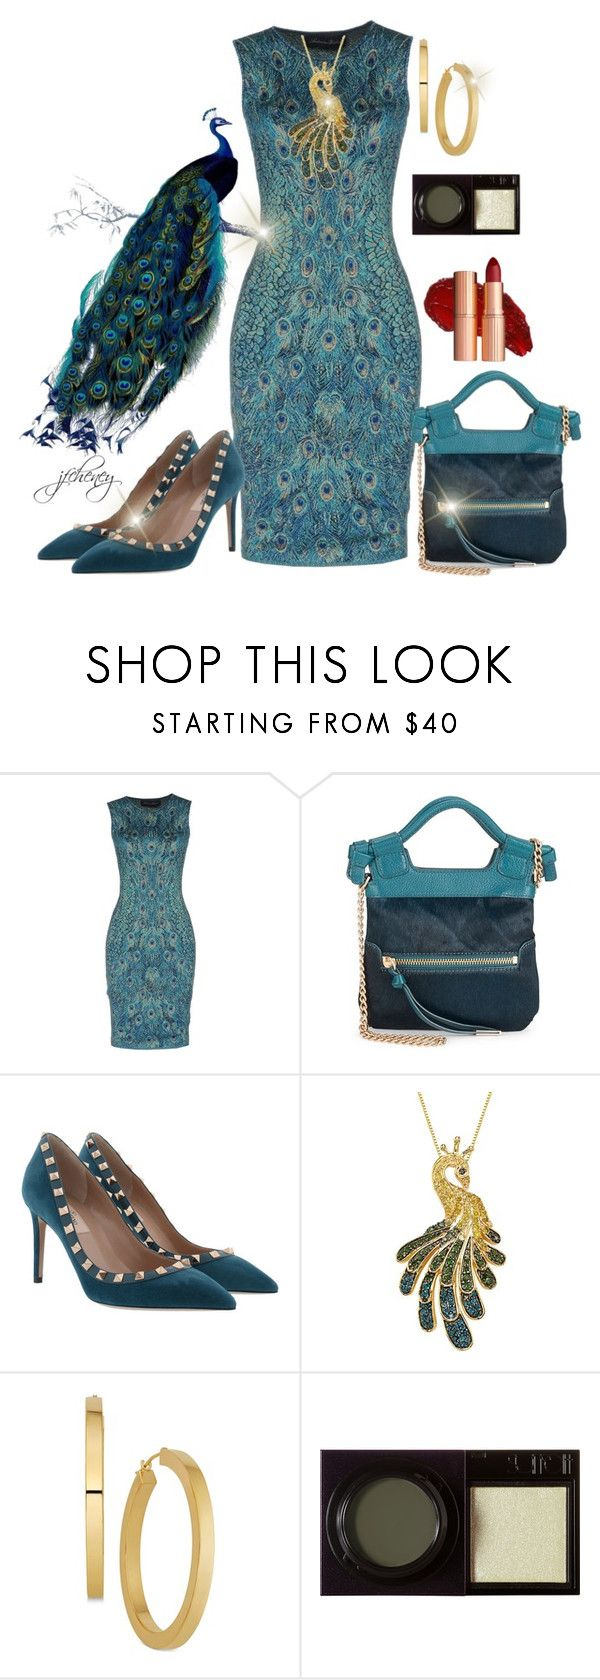 """Peacock Rocks"" by jfcheney ❤ liked on Polyvore featuring Antonino Valenti, Foley + Corinna, Valentino and Surratt"